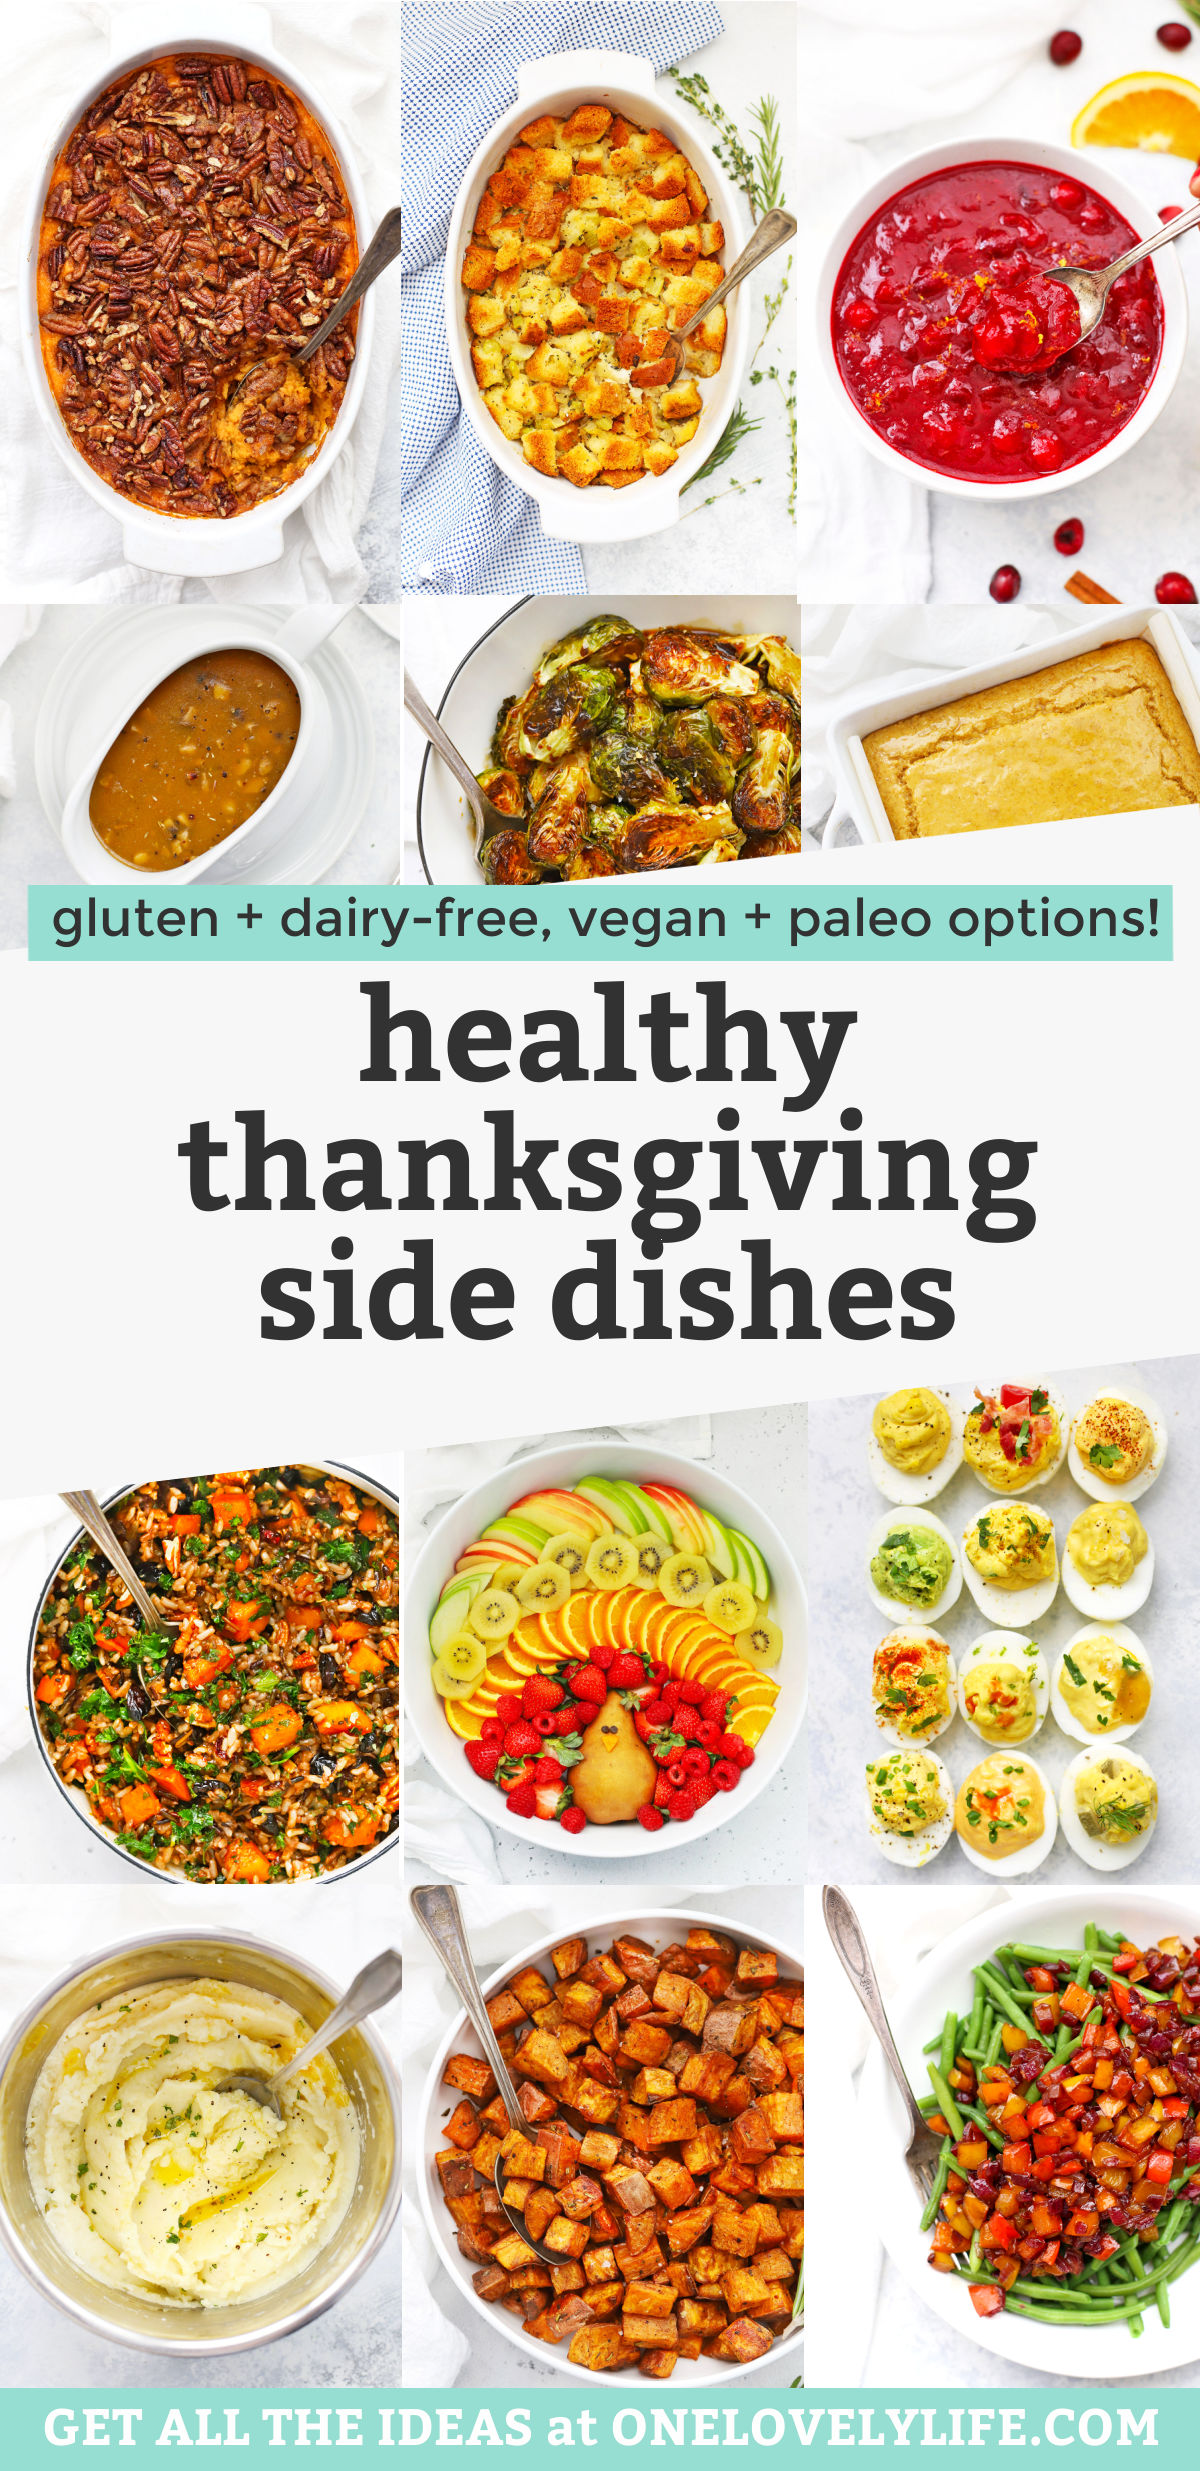 Our Best Healthy Thanksgiving Side Dishes - Everything you need for Thanksgiving besides a turkey! It's always a good Thanksgiving with these yummy sides! // Paleo Thanksgiving Sides // Vegan Thanksgiving Sides // Gluten Free Thanksgiving Side Dishes // Healthy Thanksgiving Sides #sidedishes #thanksgiving #paleo #vegan #healthy #glutenfree